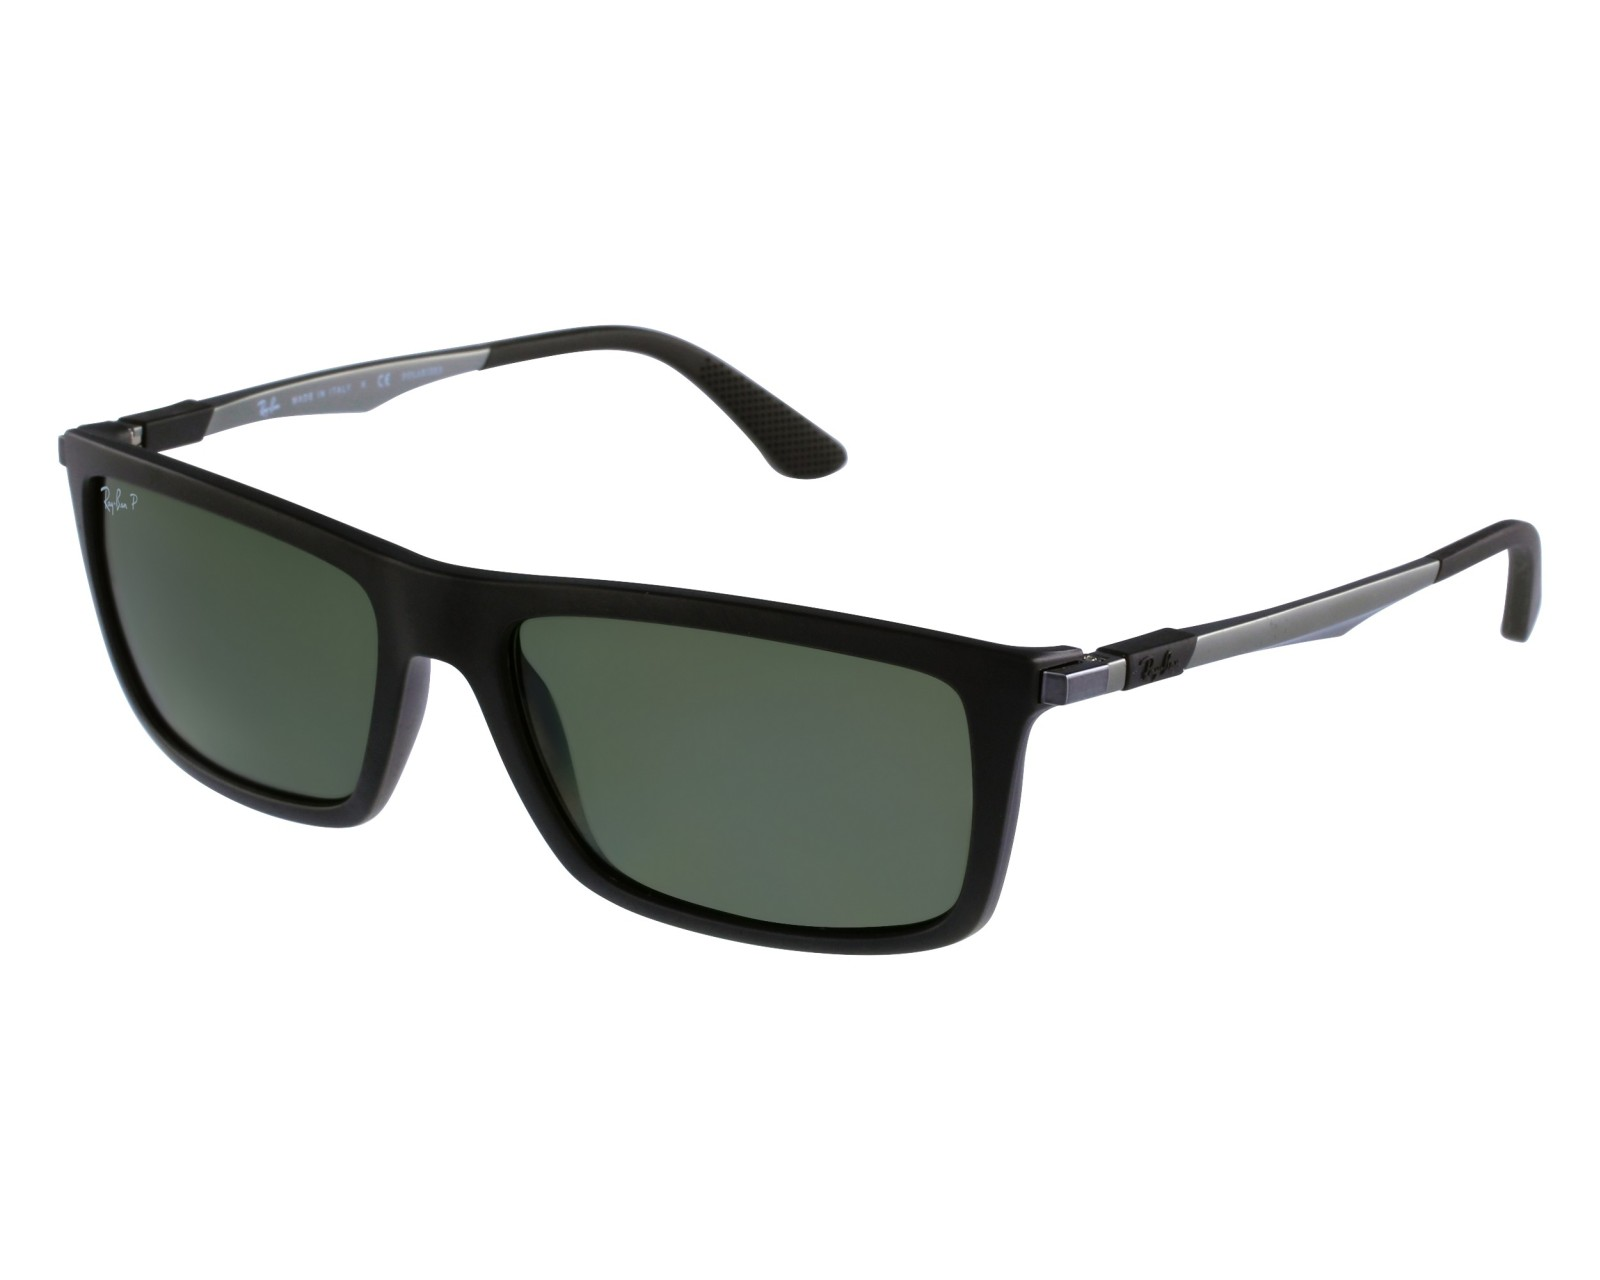 e3b1add29a Sunglasses Ray-Ban RB-4214 601-S 9A - Black front view